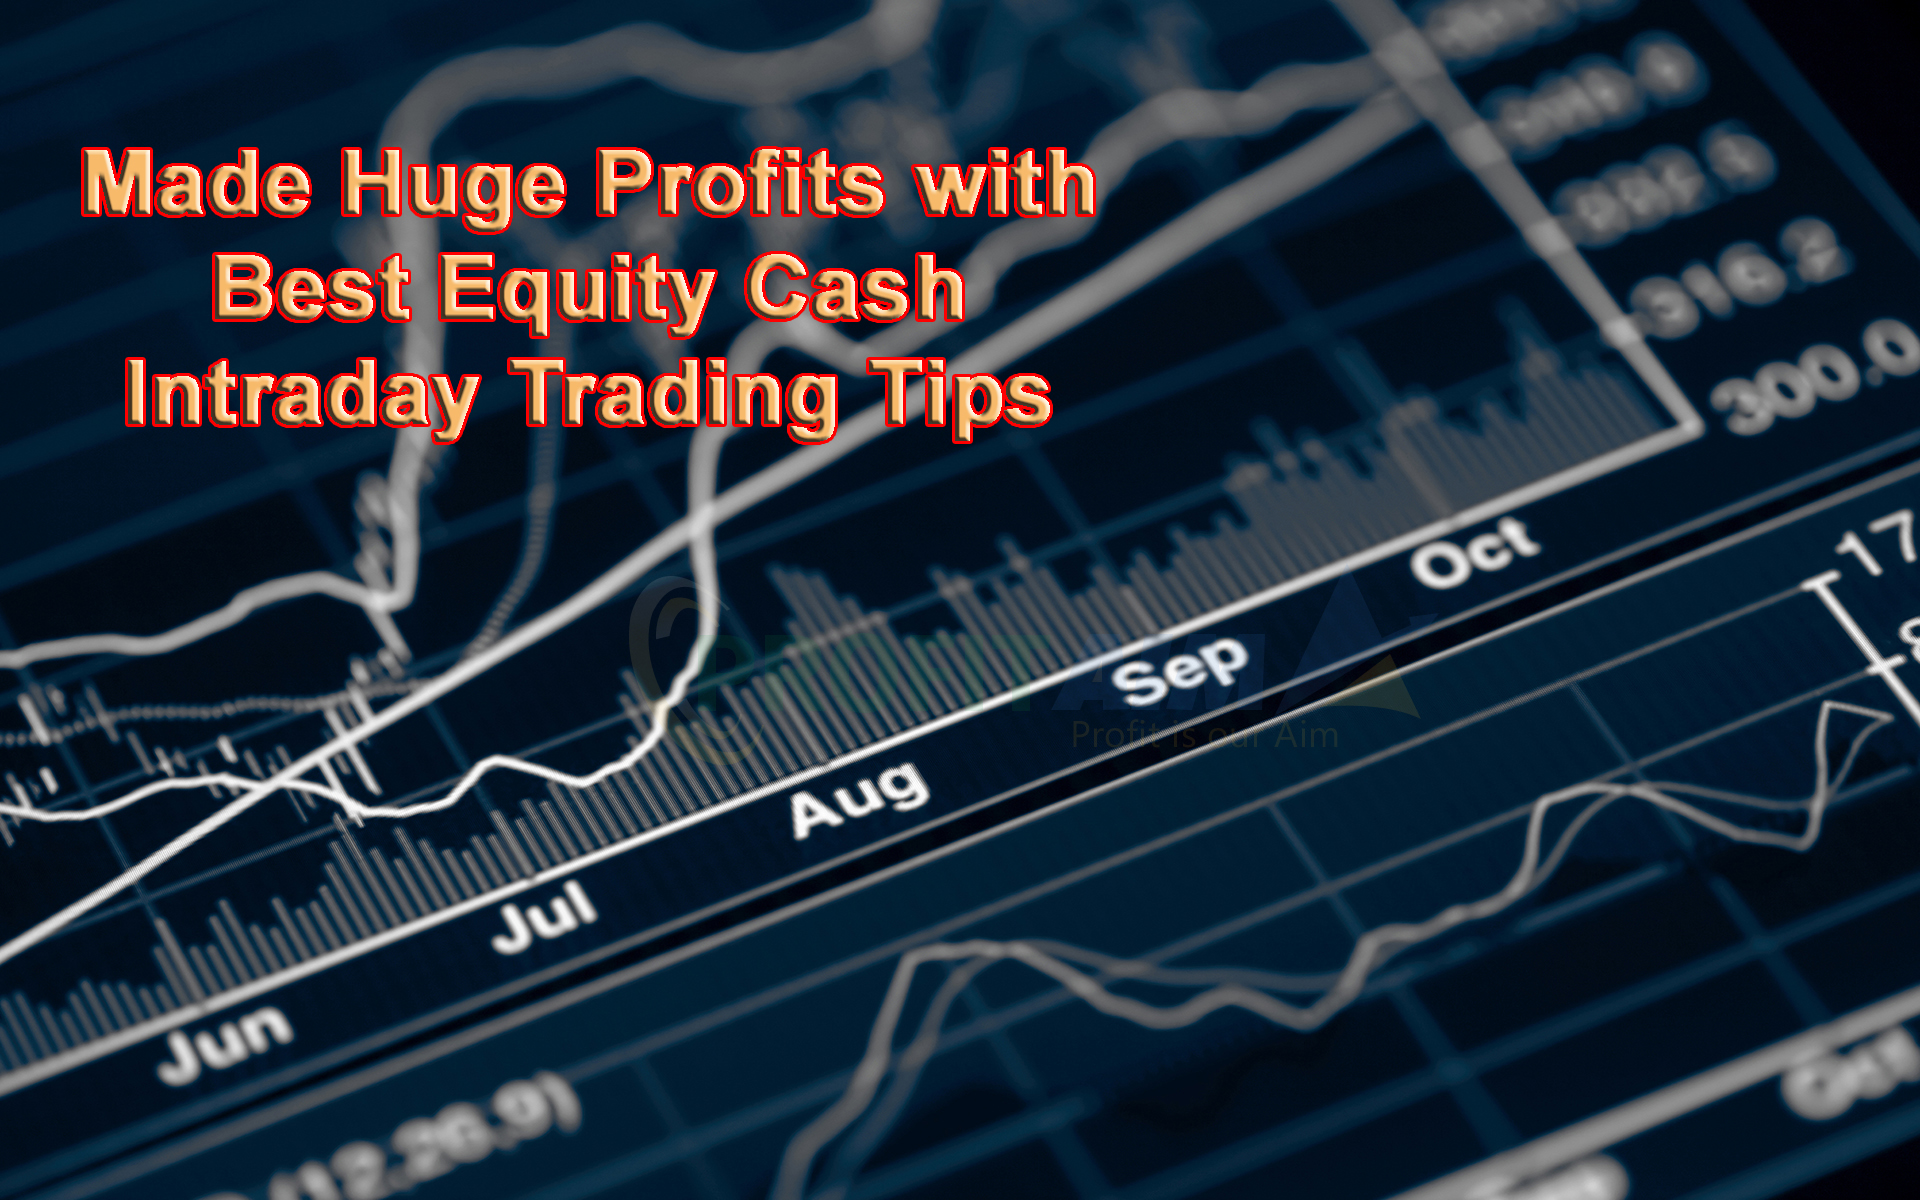 Made Huge Profits with Best Equity Cash Intraday Trading Tips